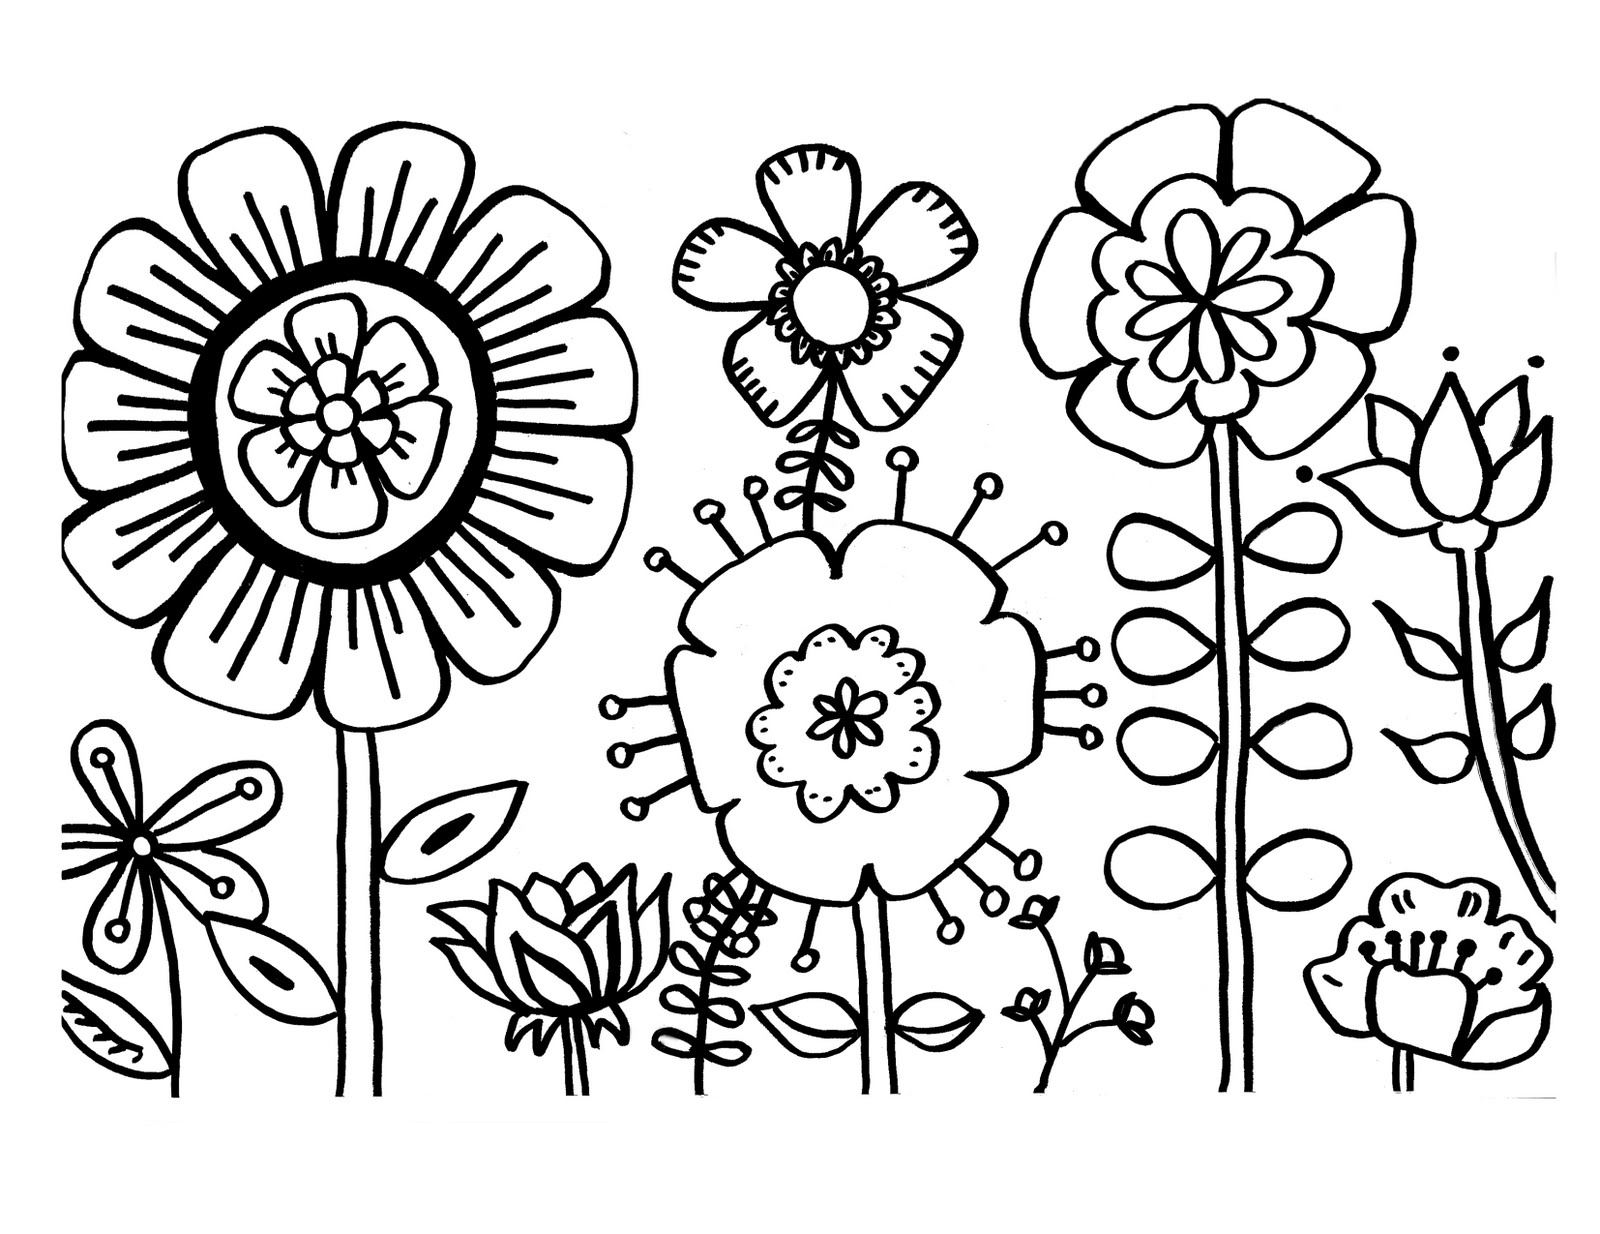 free flower coloring pages flowers to colour - Flower Printable Coloring Pages